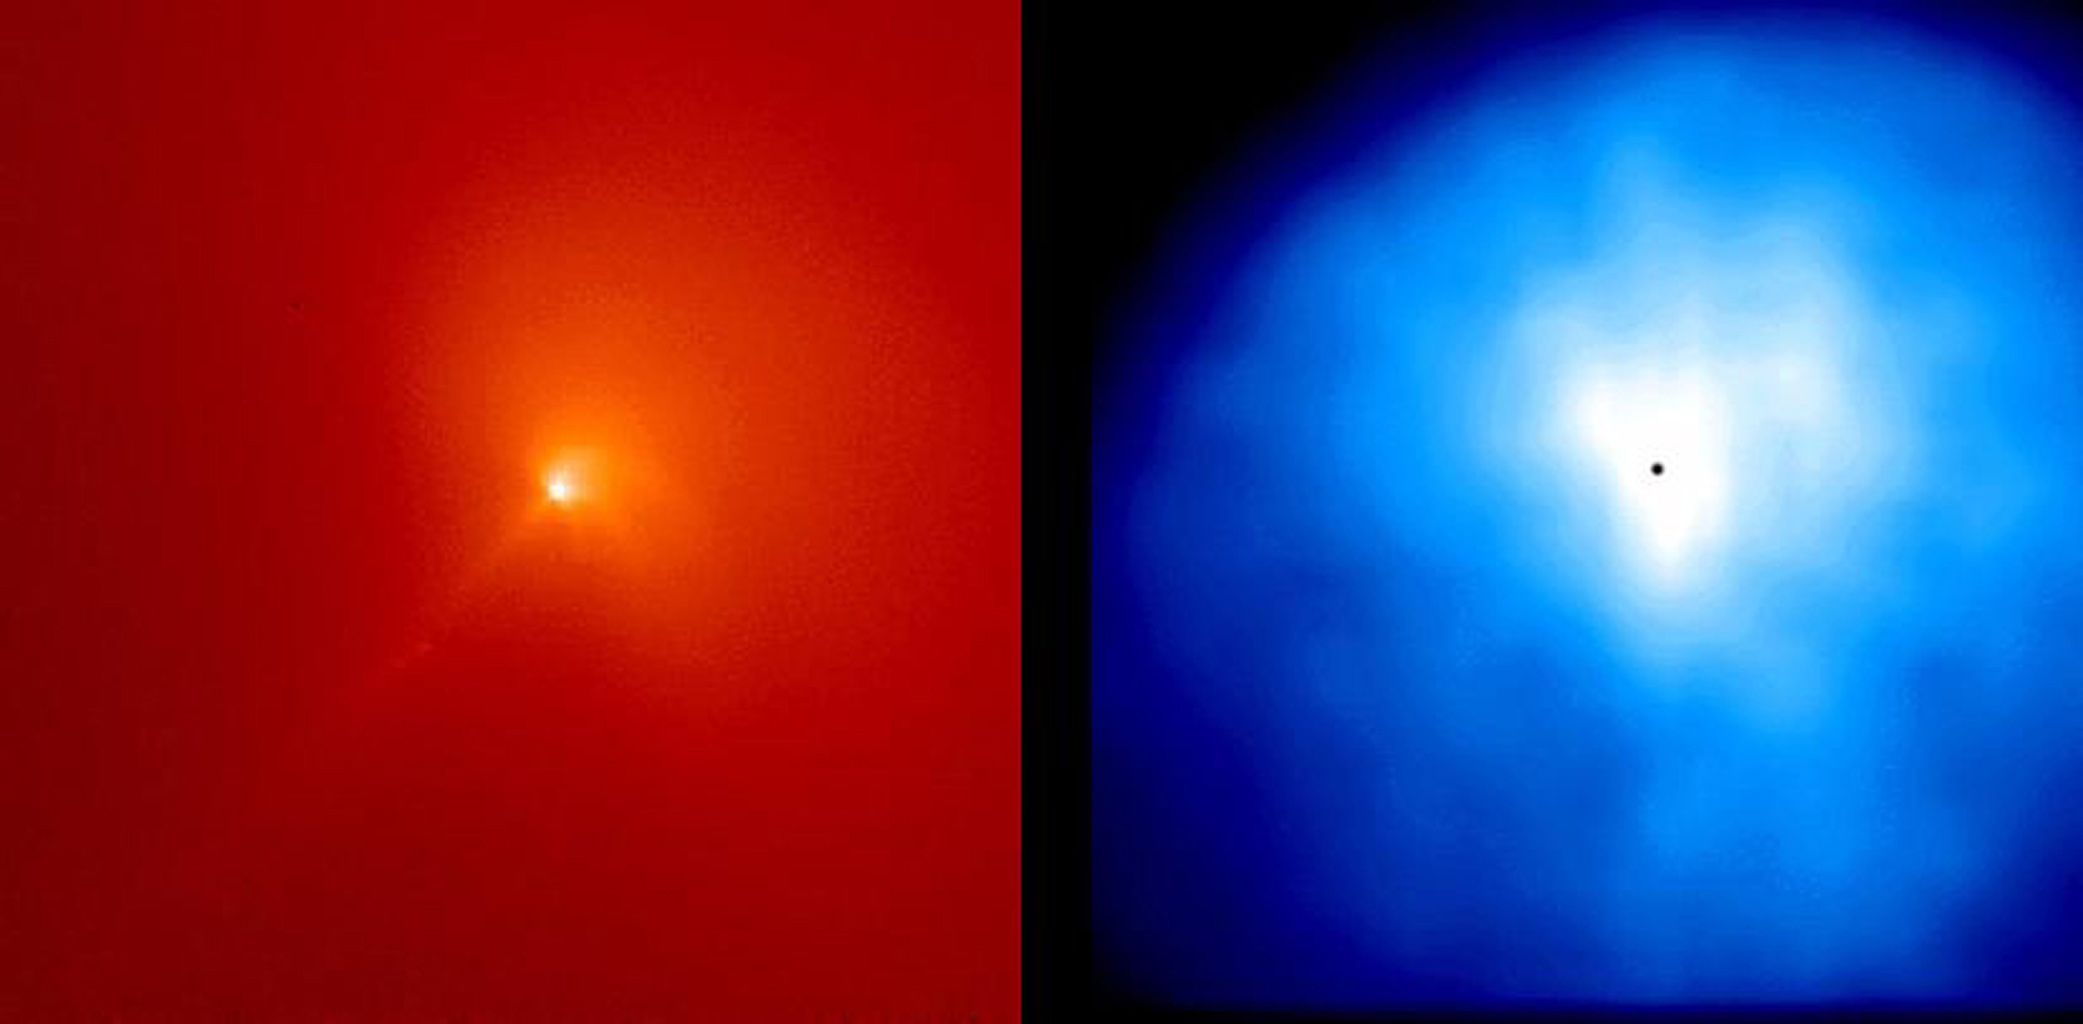 These are two images of the inner coma of Comet Hyakutake made on April 3 and 4, 1996, using the NASA Hubble Space Telescope Wide Field Planetary Camera 2 (WFPC2).